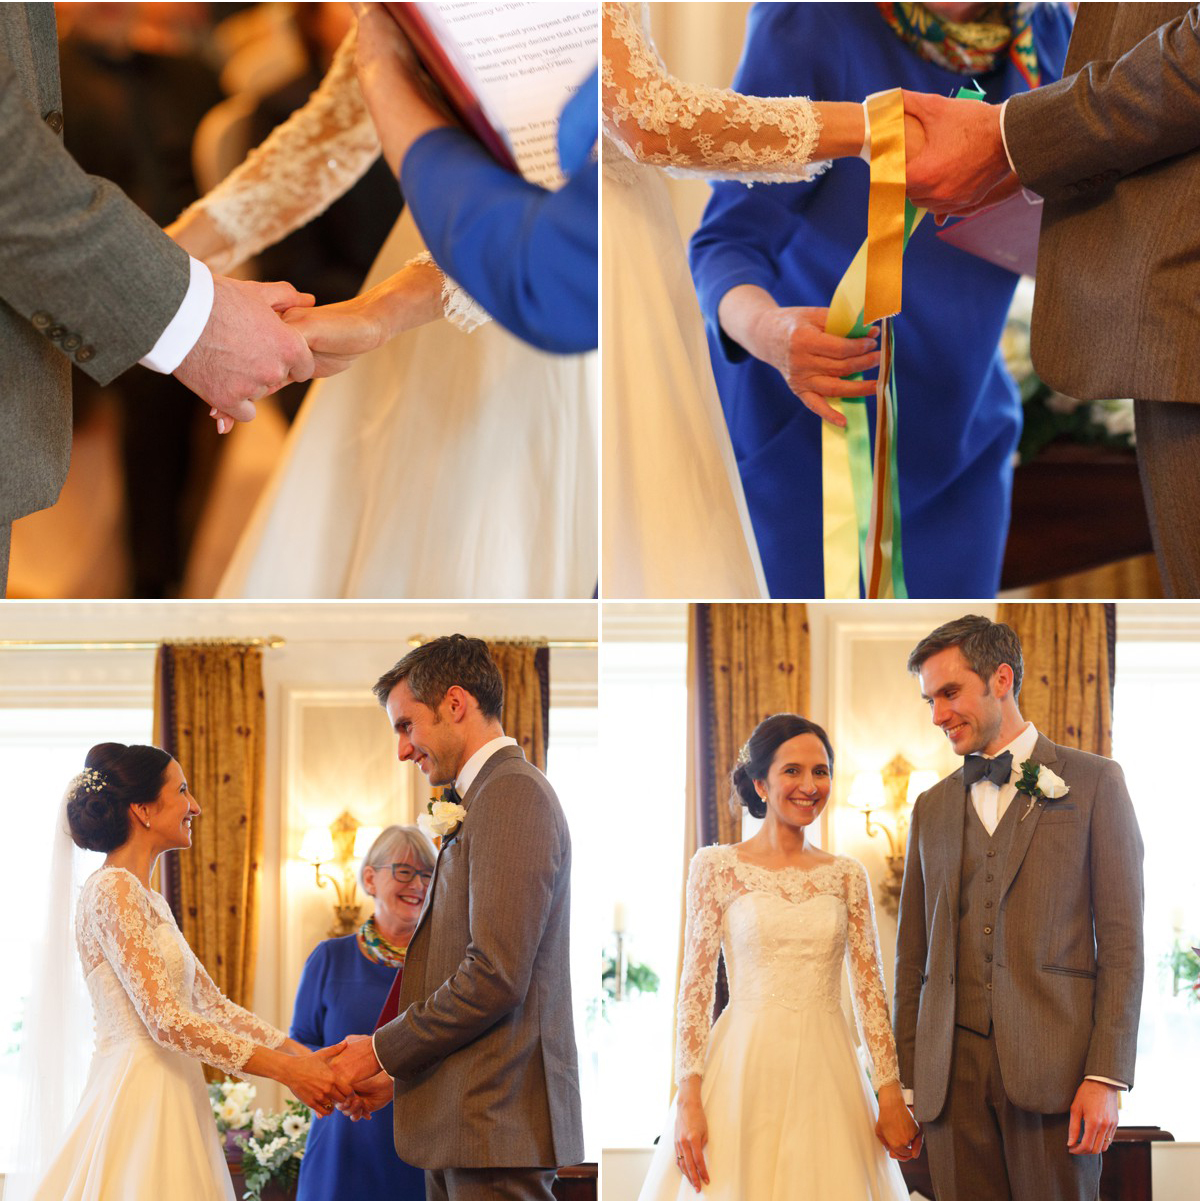 humanist wedding ceremony with hand fasting